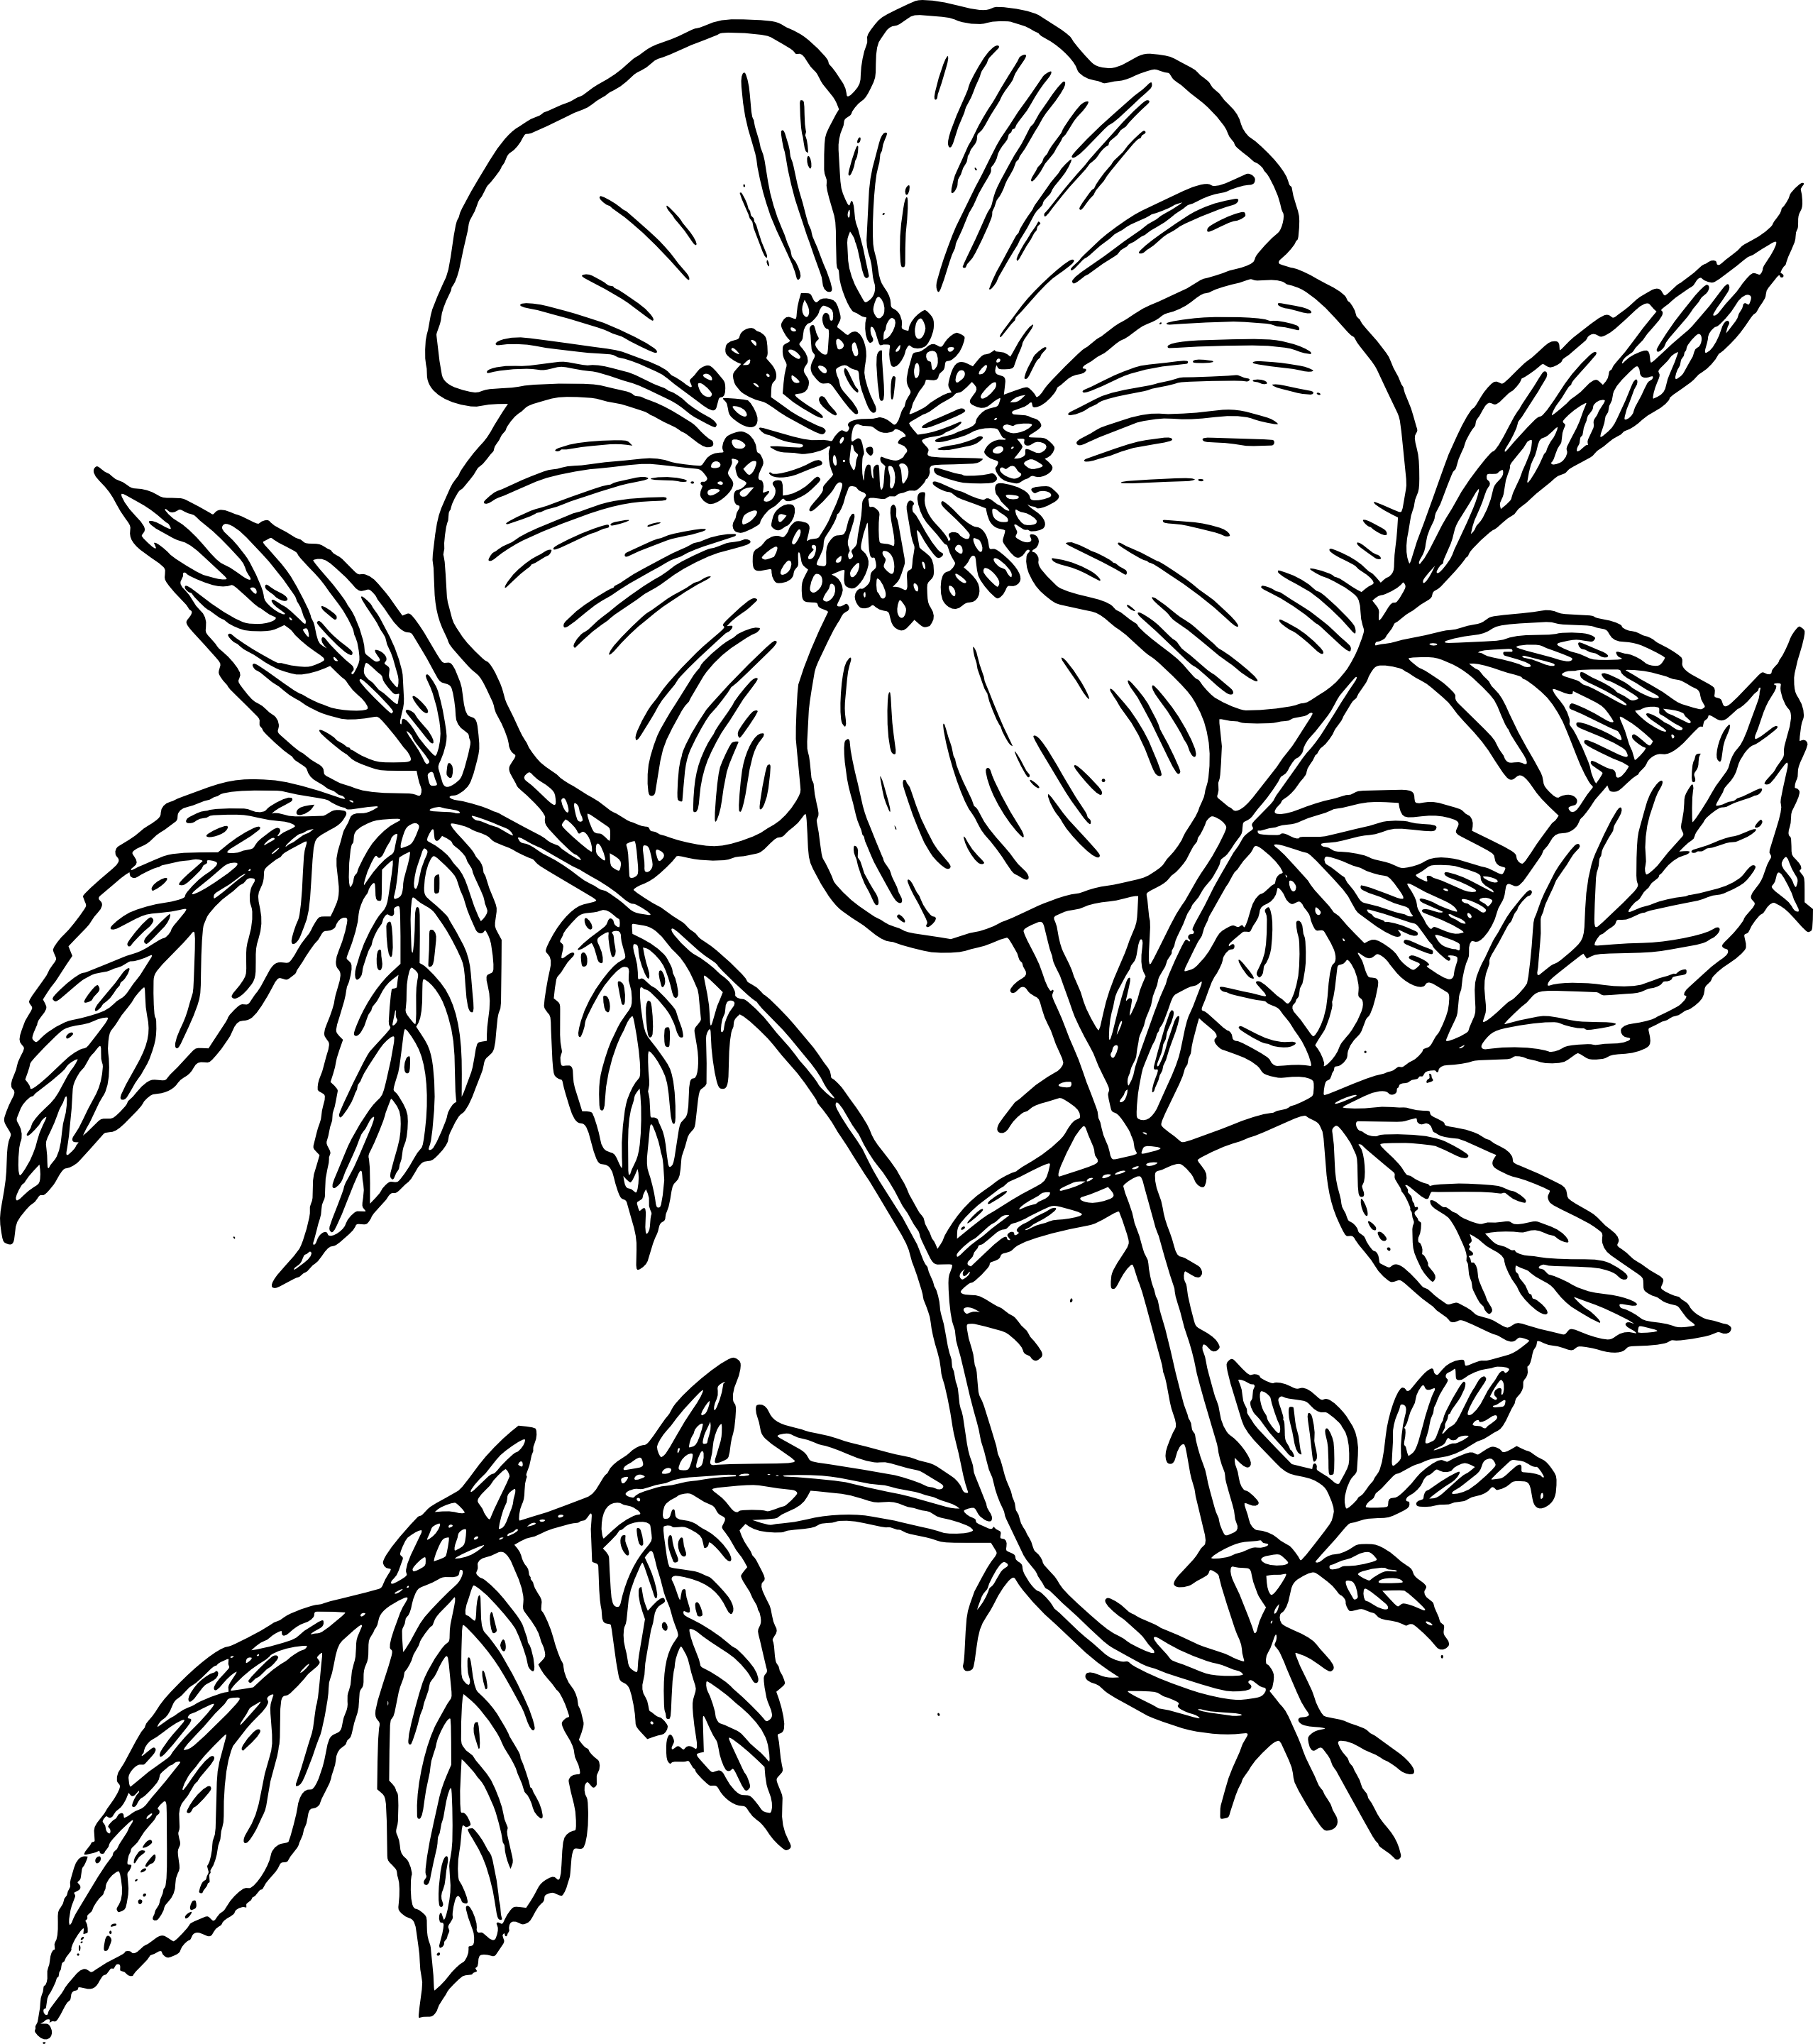 2555x2880 Line Drawing Of A Rose